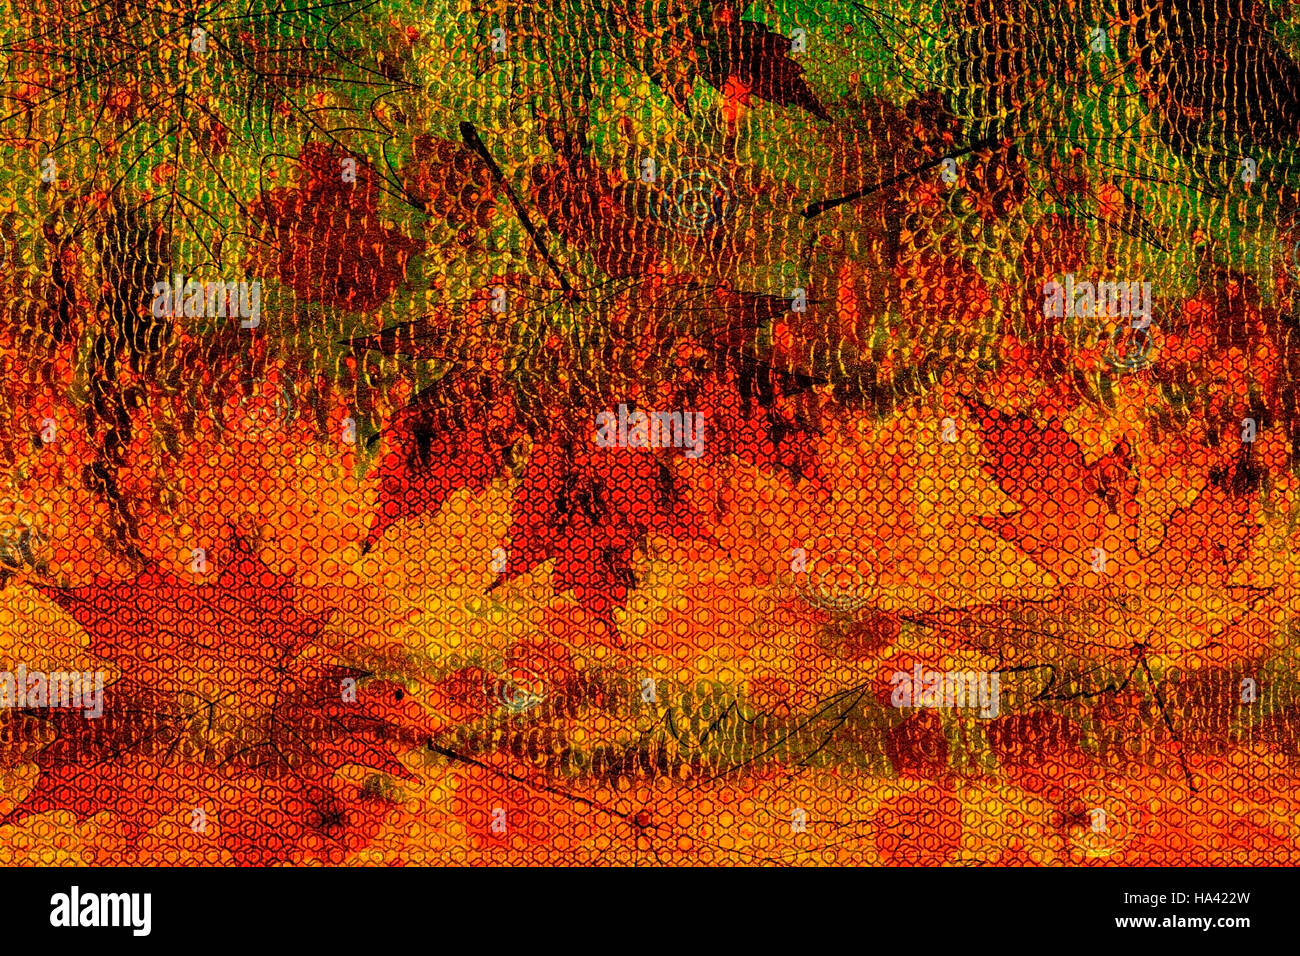 abstract autumn bright background elements of green, red-orange made of fallen autumn leaves Stock Photo